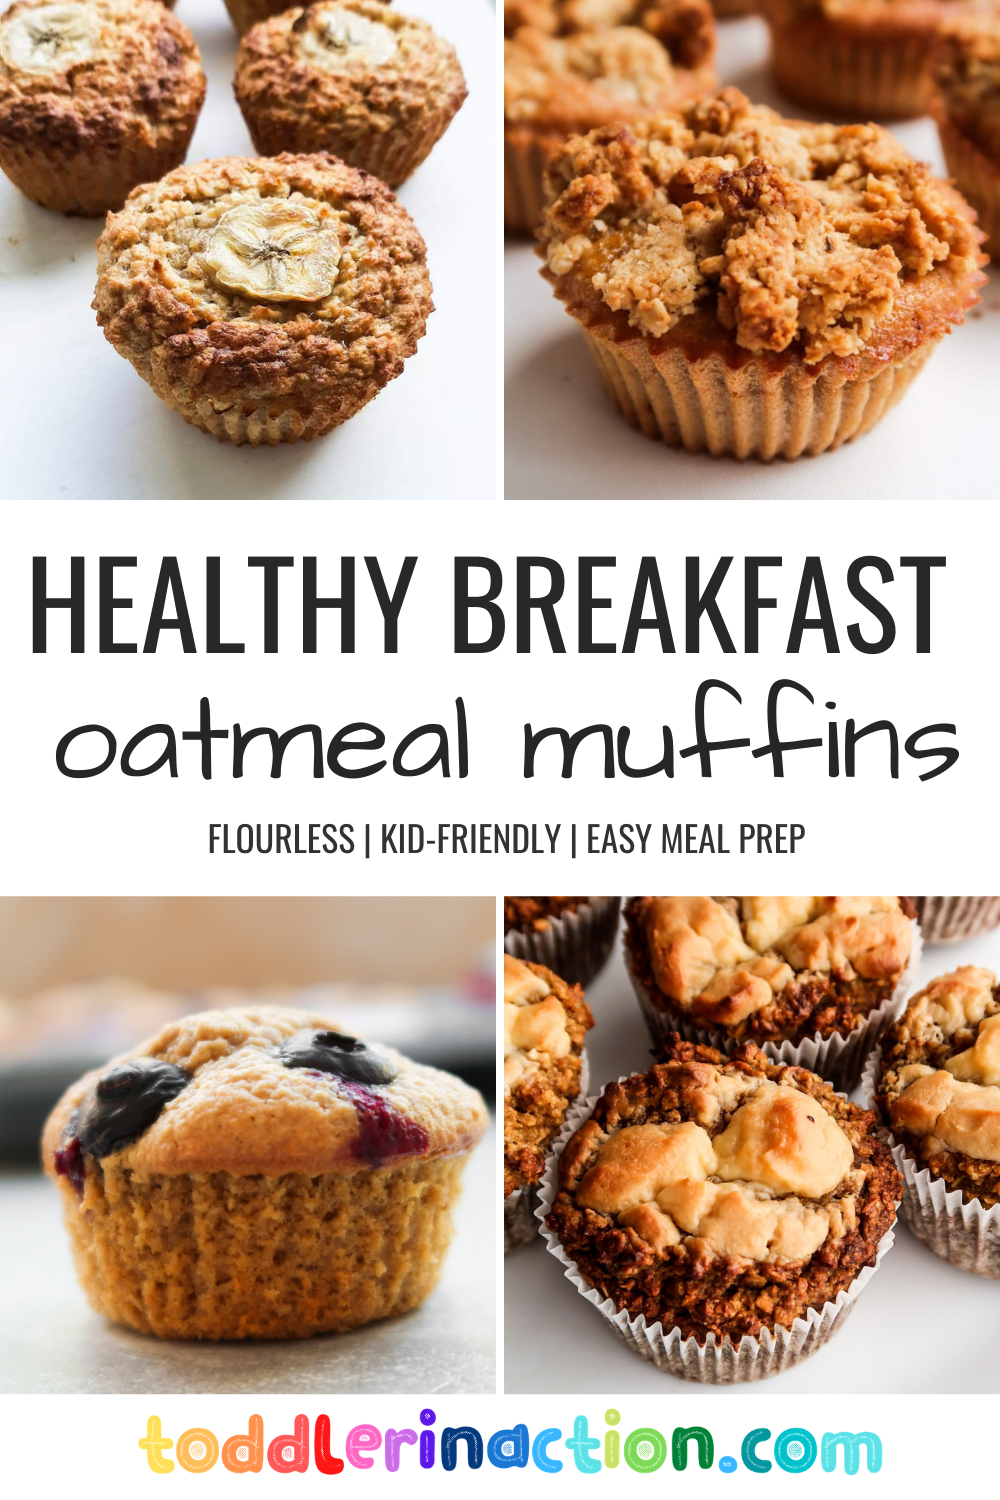 10 healthy muffin recipes for kids! These delicious oatmteal muffins are flourless, refined sugar-free and delicious! Great quick and easy breakfast or healthy snack!